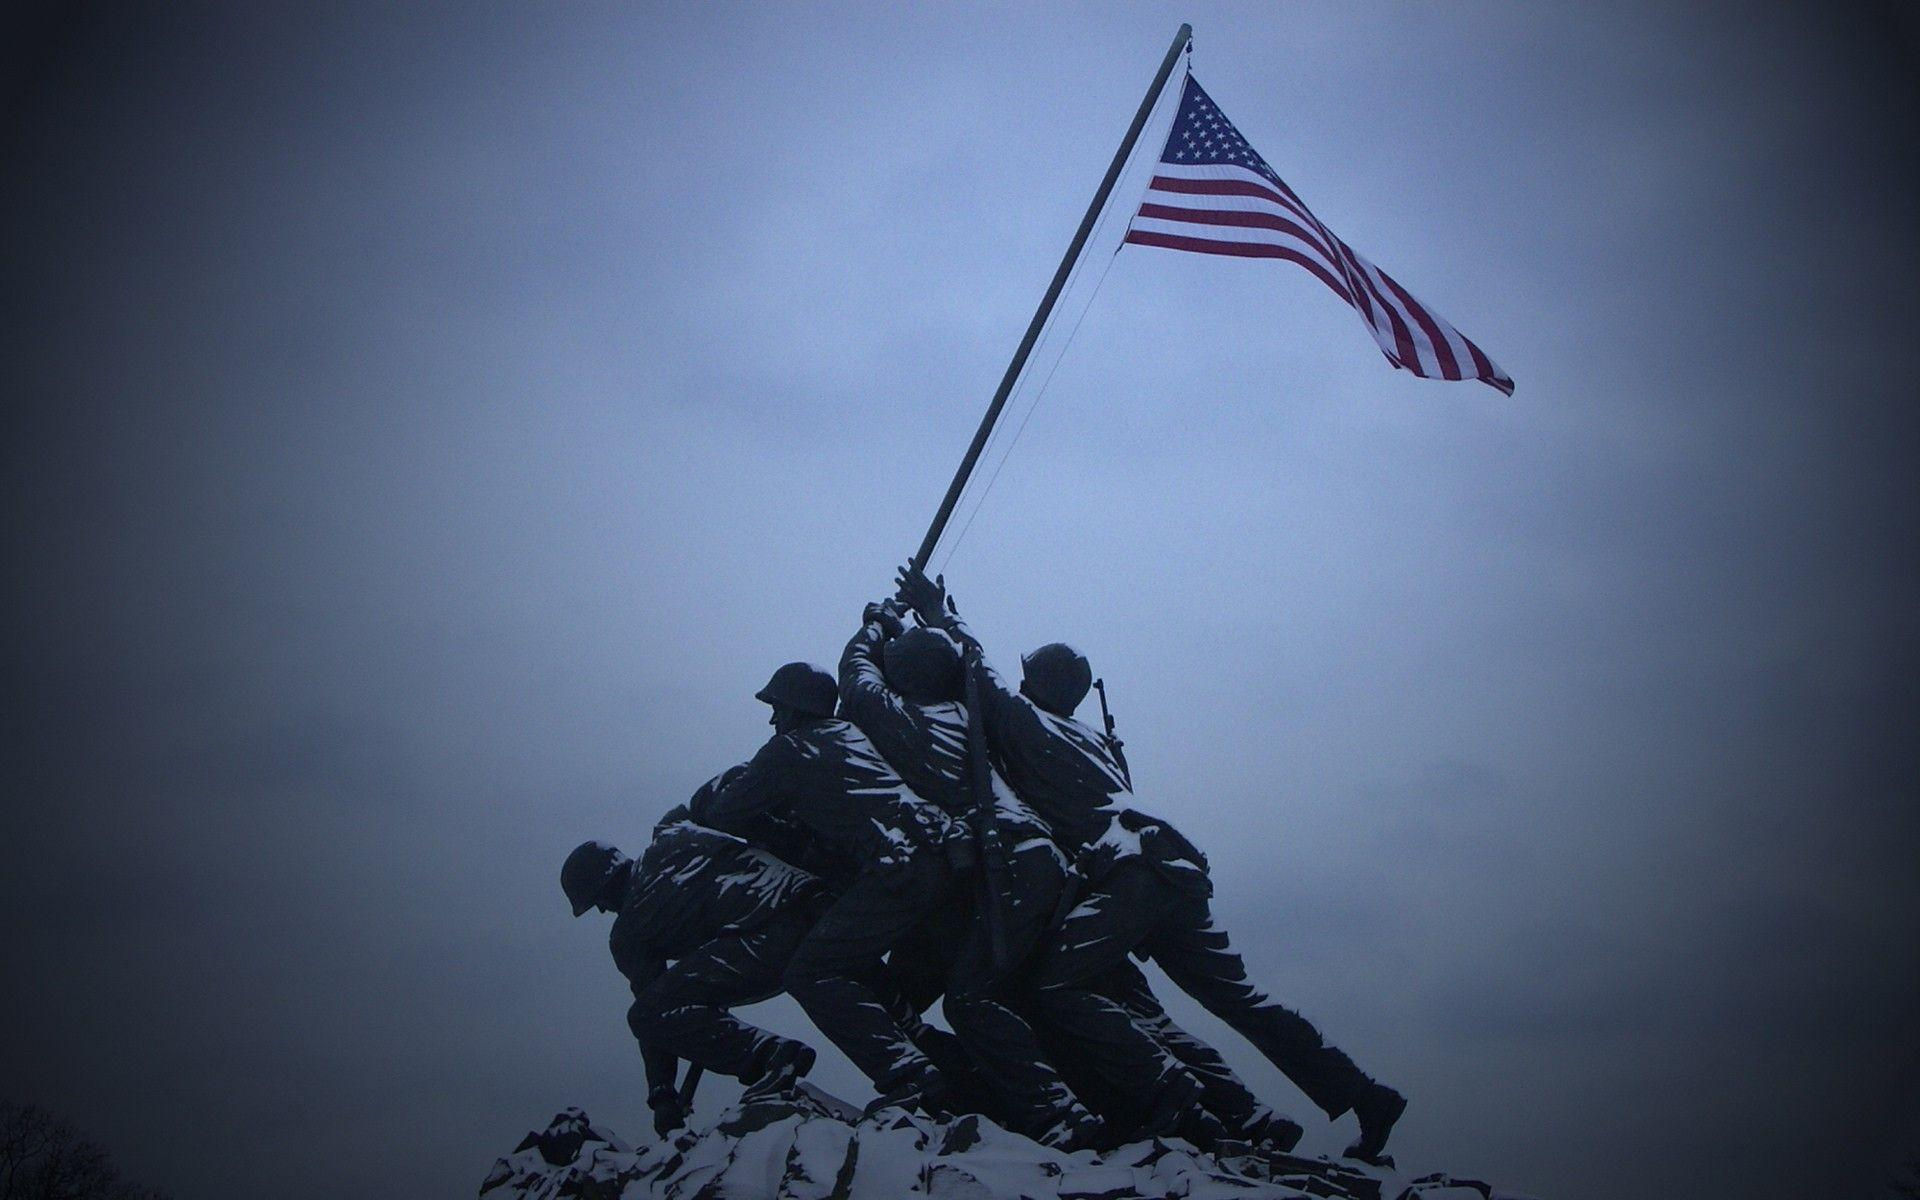 Iwo Jima Wallpaper Images & Pictures - Becuo